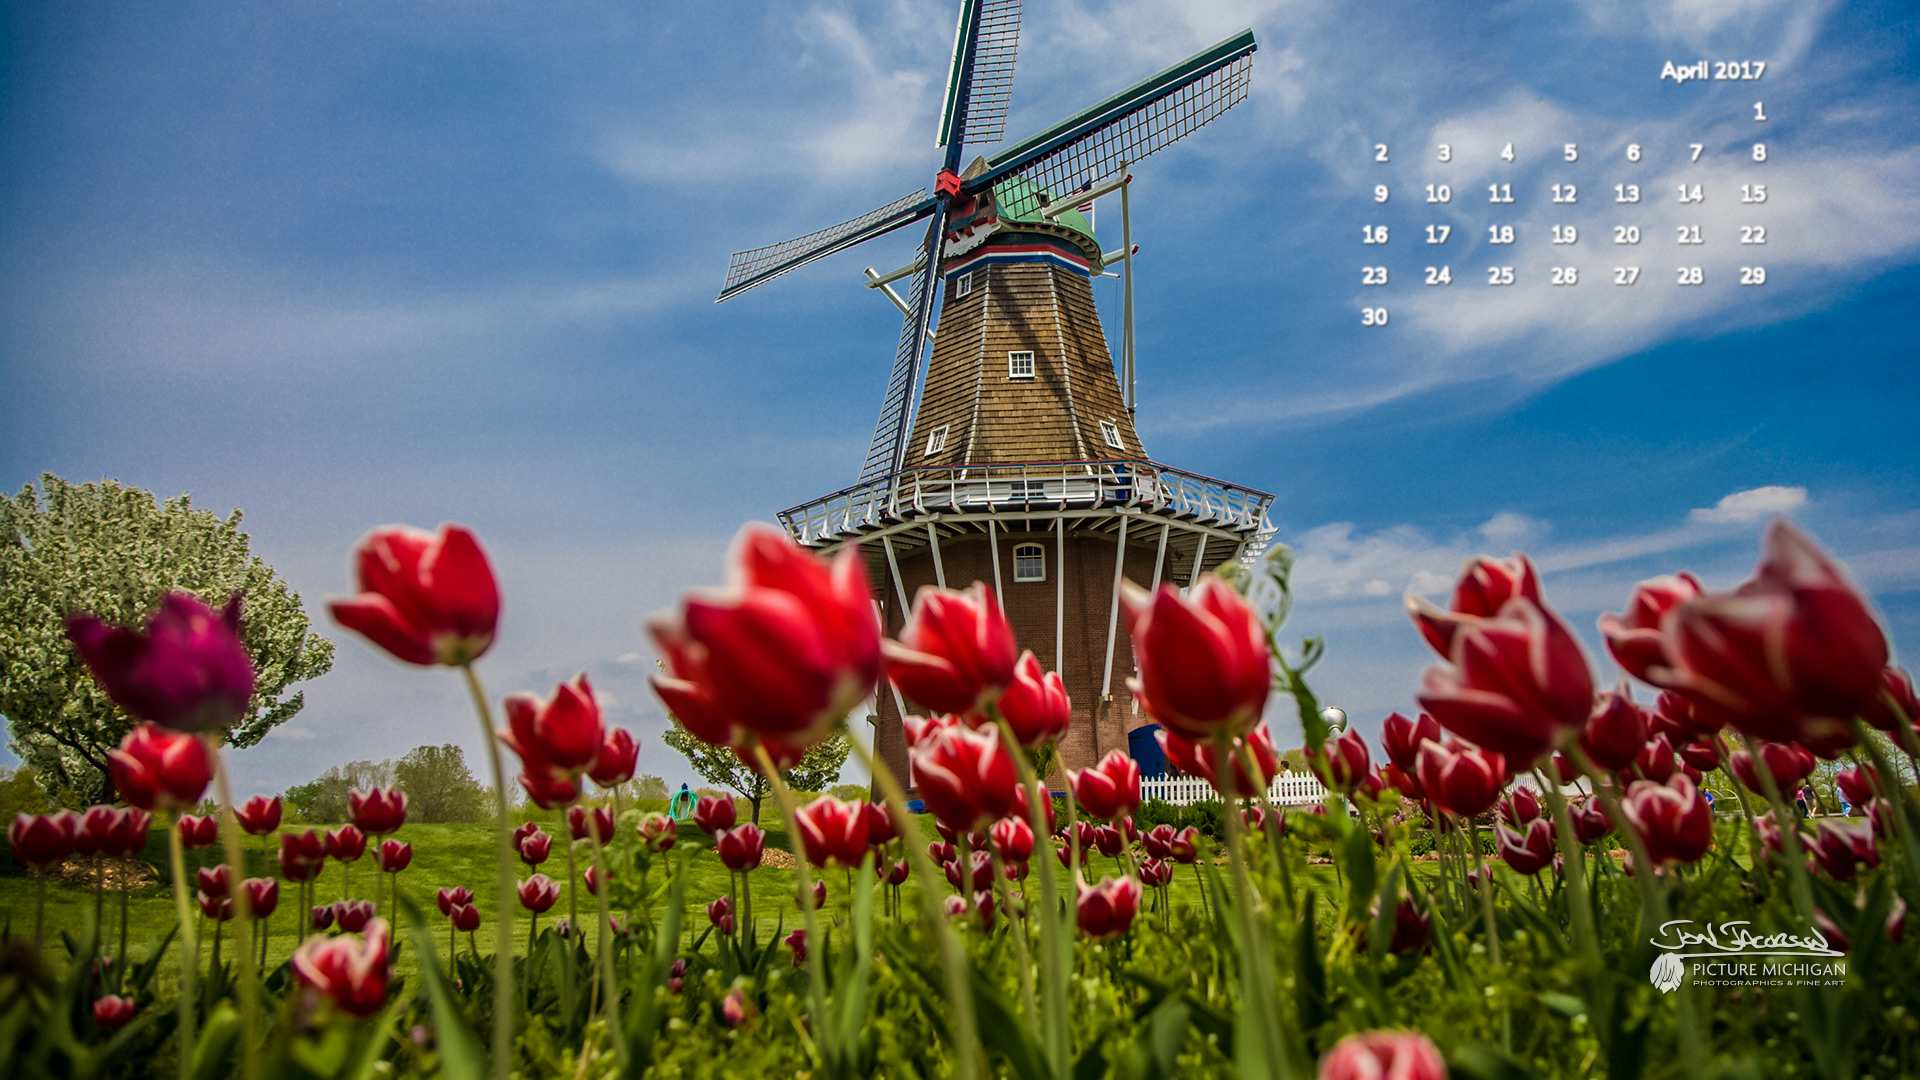 April 2017 Calendar Desktop Wallpaper